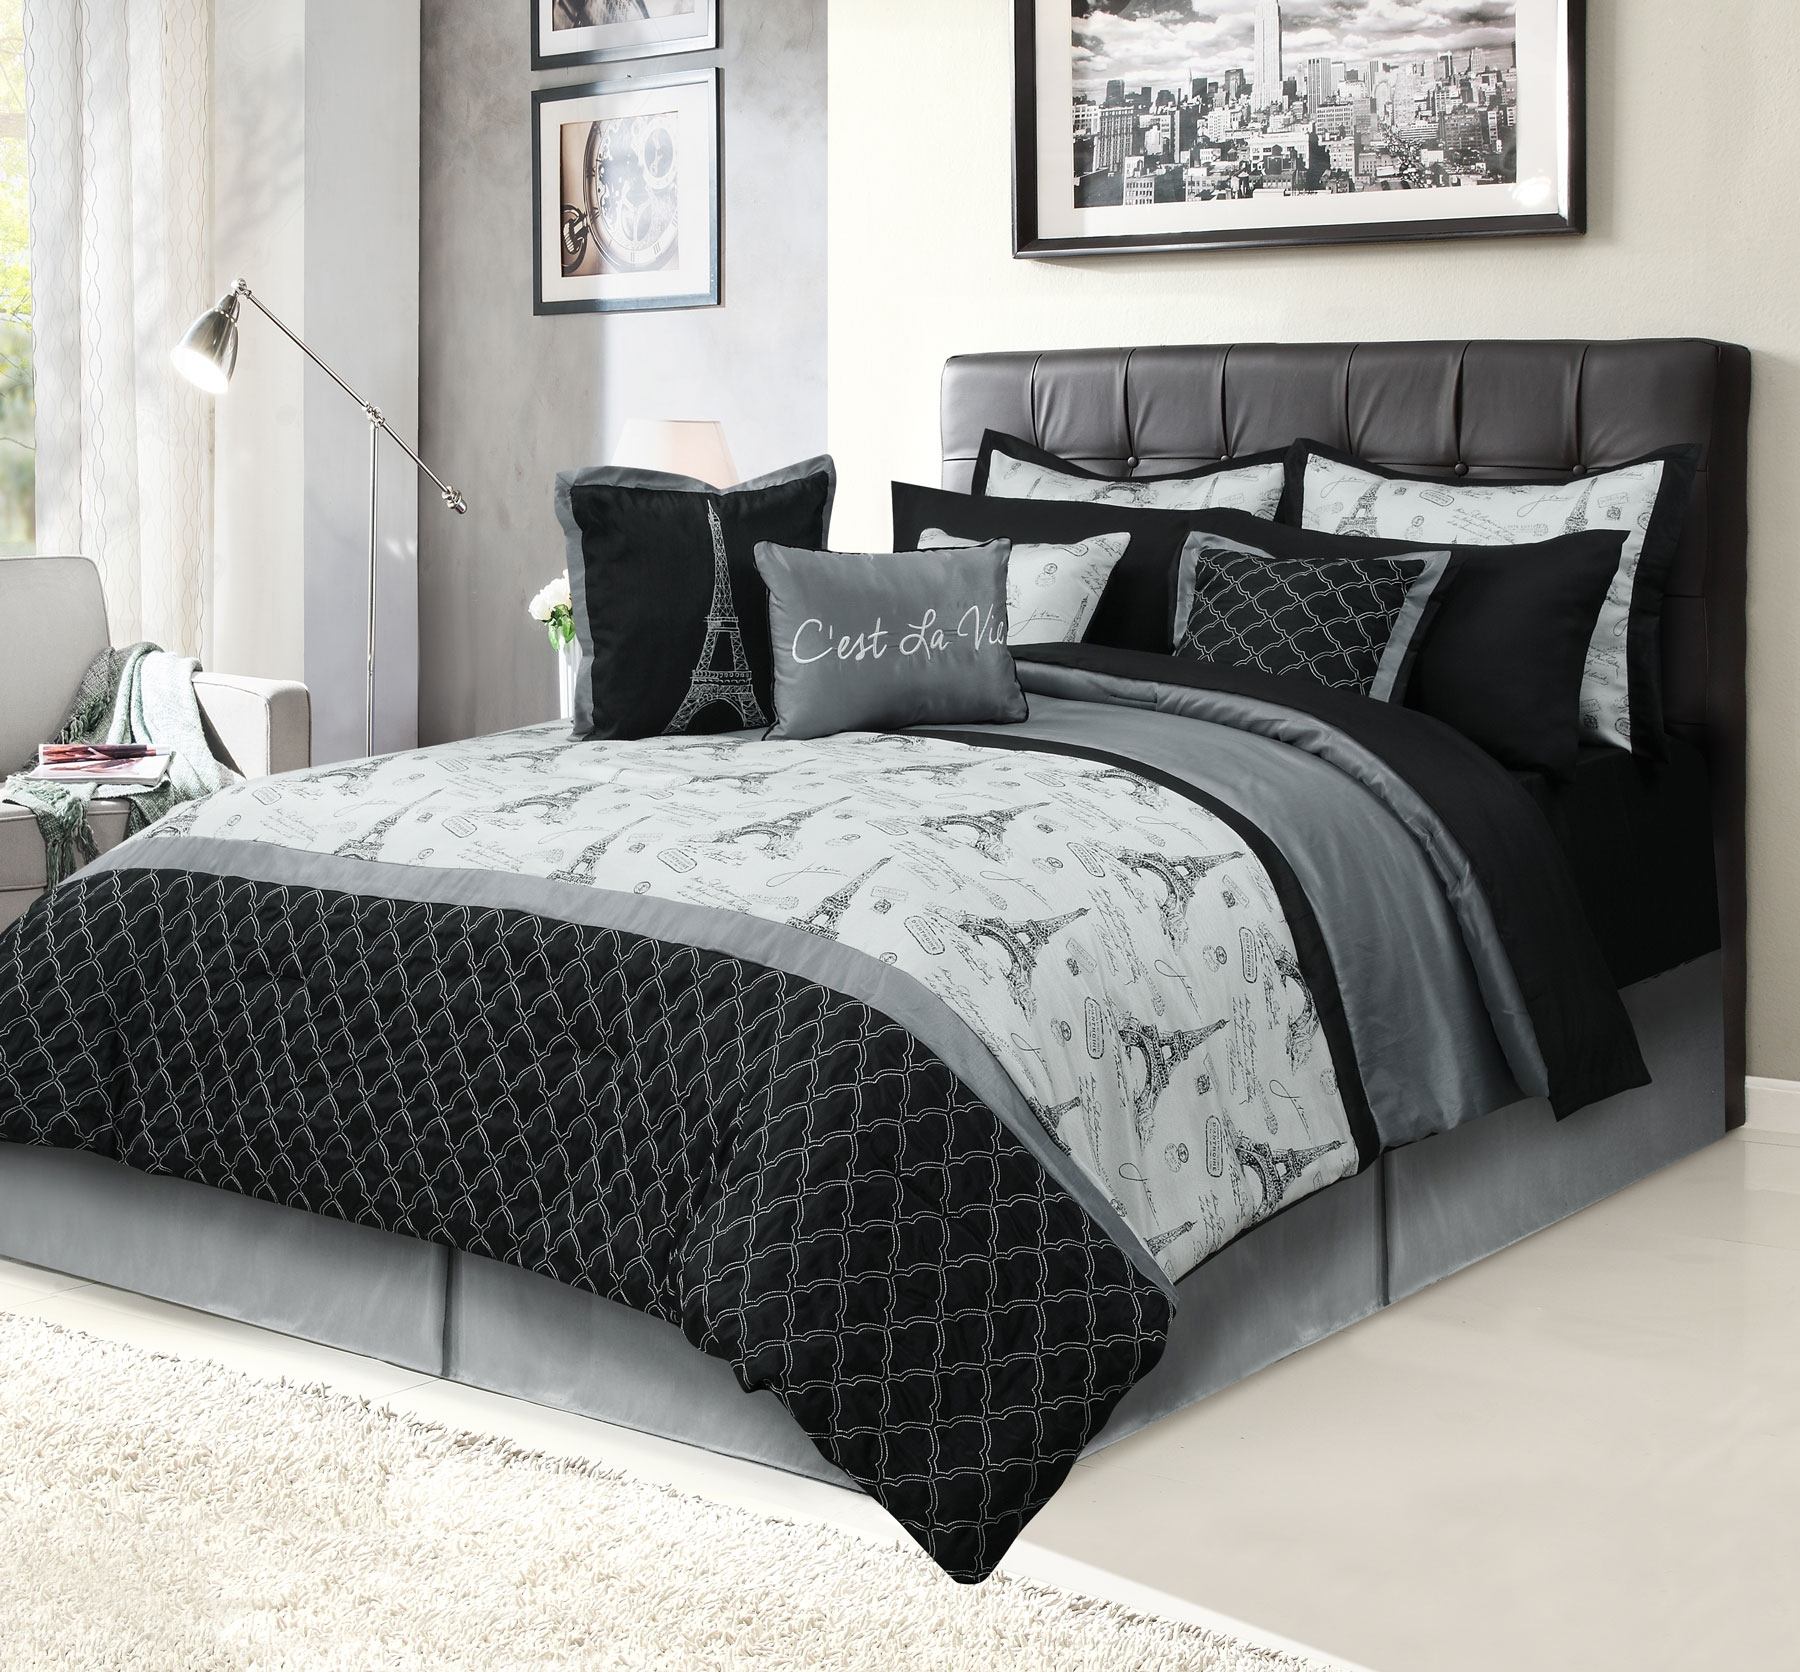 Paris King Bedding Bed in a Bag 12 Piece Set with Sheets, Eiffel Tower Black and Gray